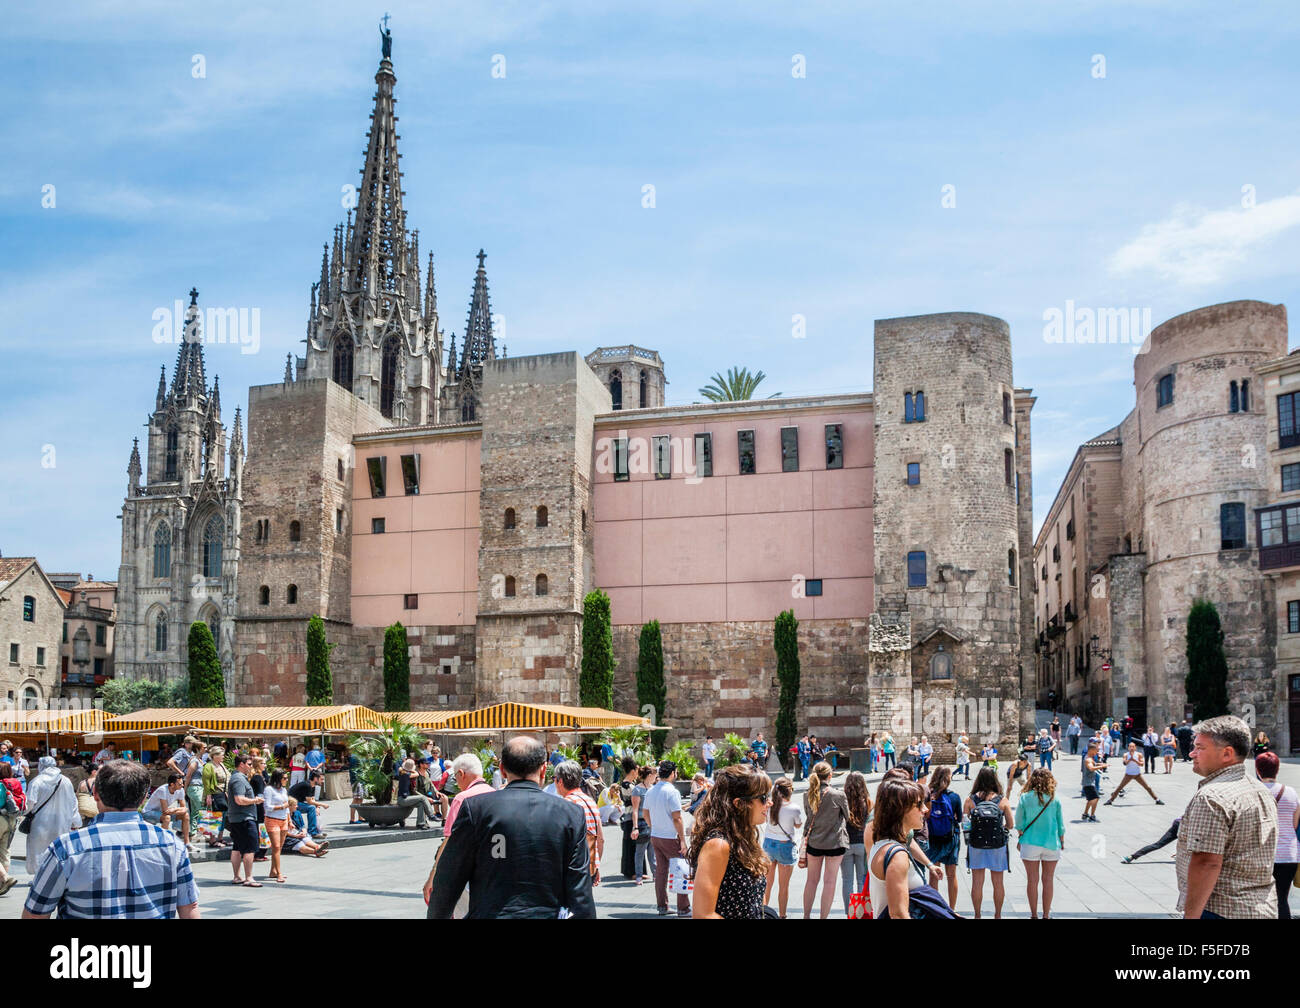 Spain, Catalonia, Barcelona, Barri Gòtic, view Plaça Nova with Barcelona Cathedral, the Romanesque towers - Stock Image